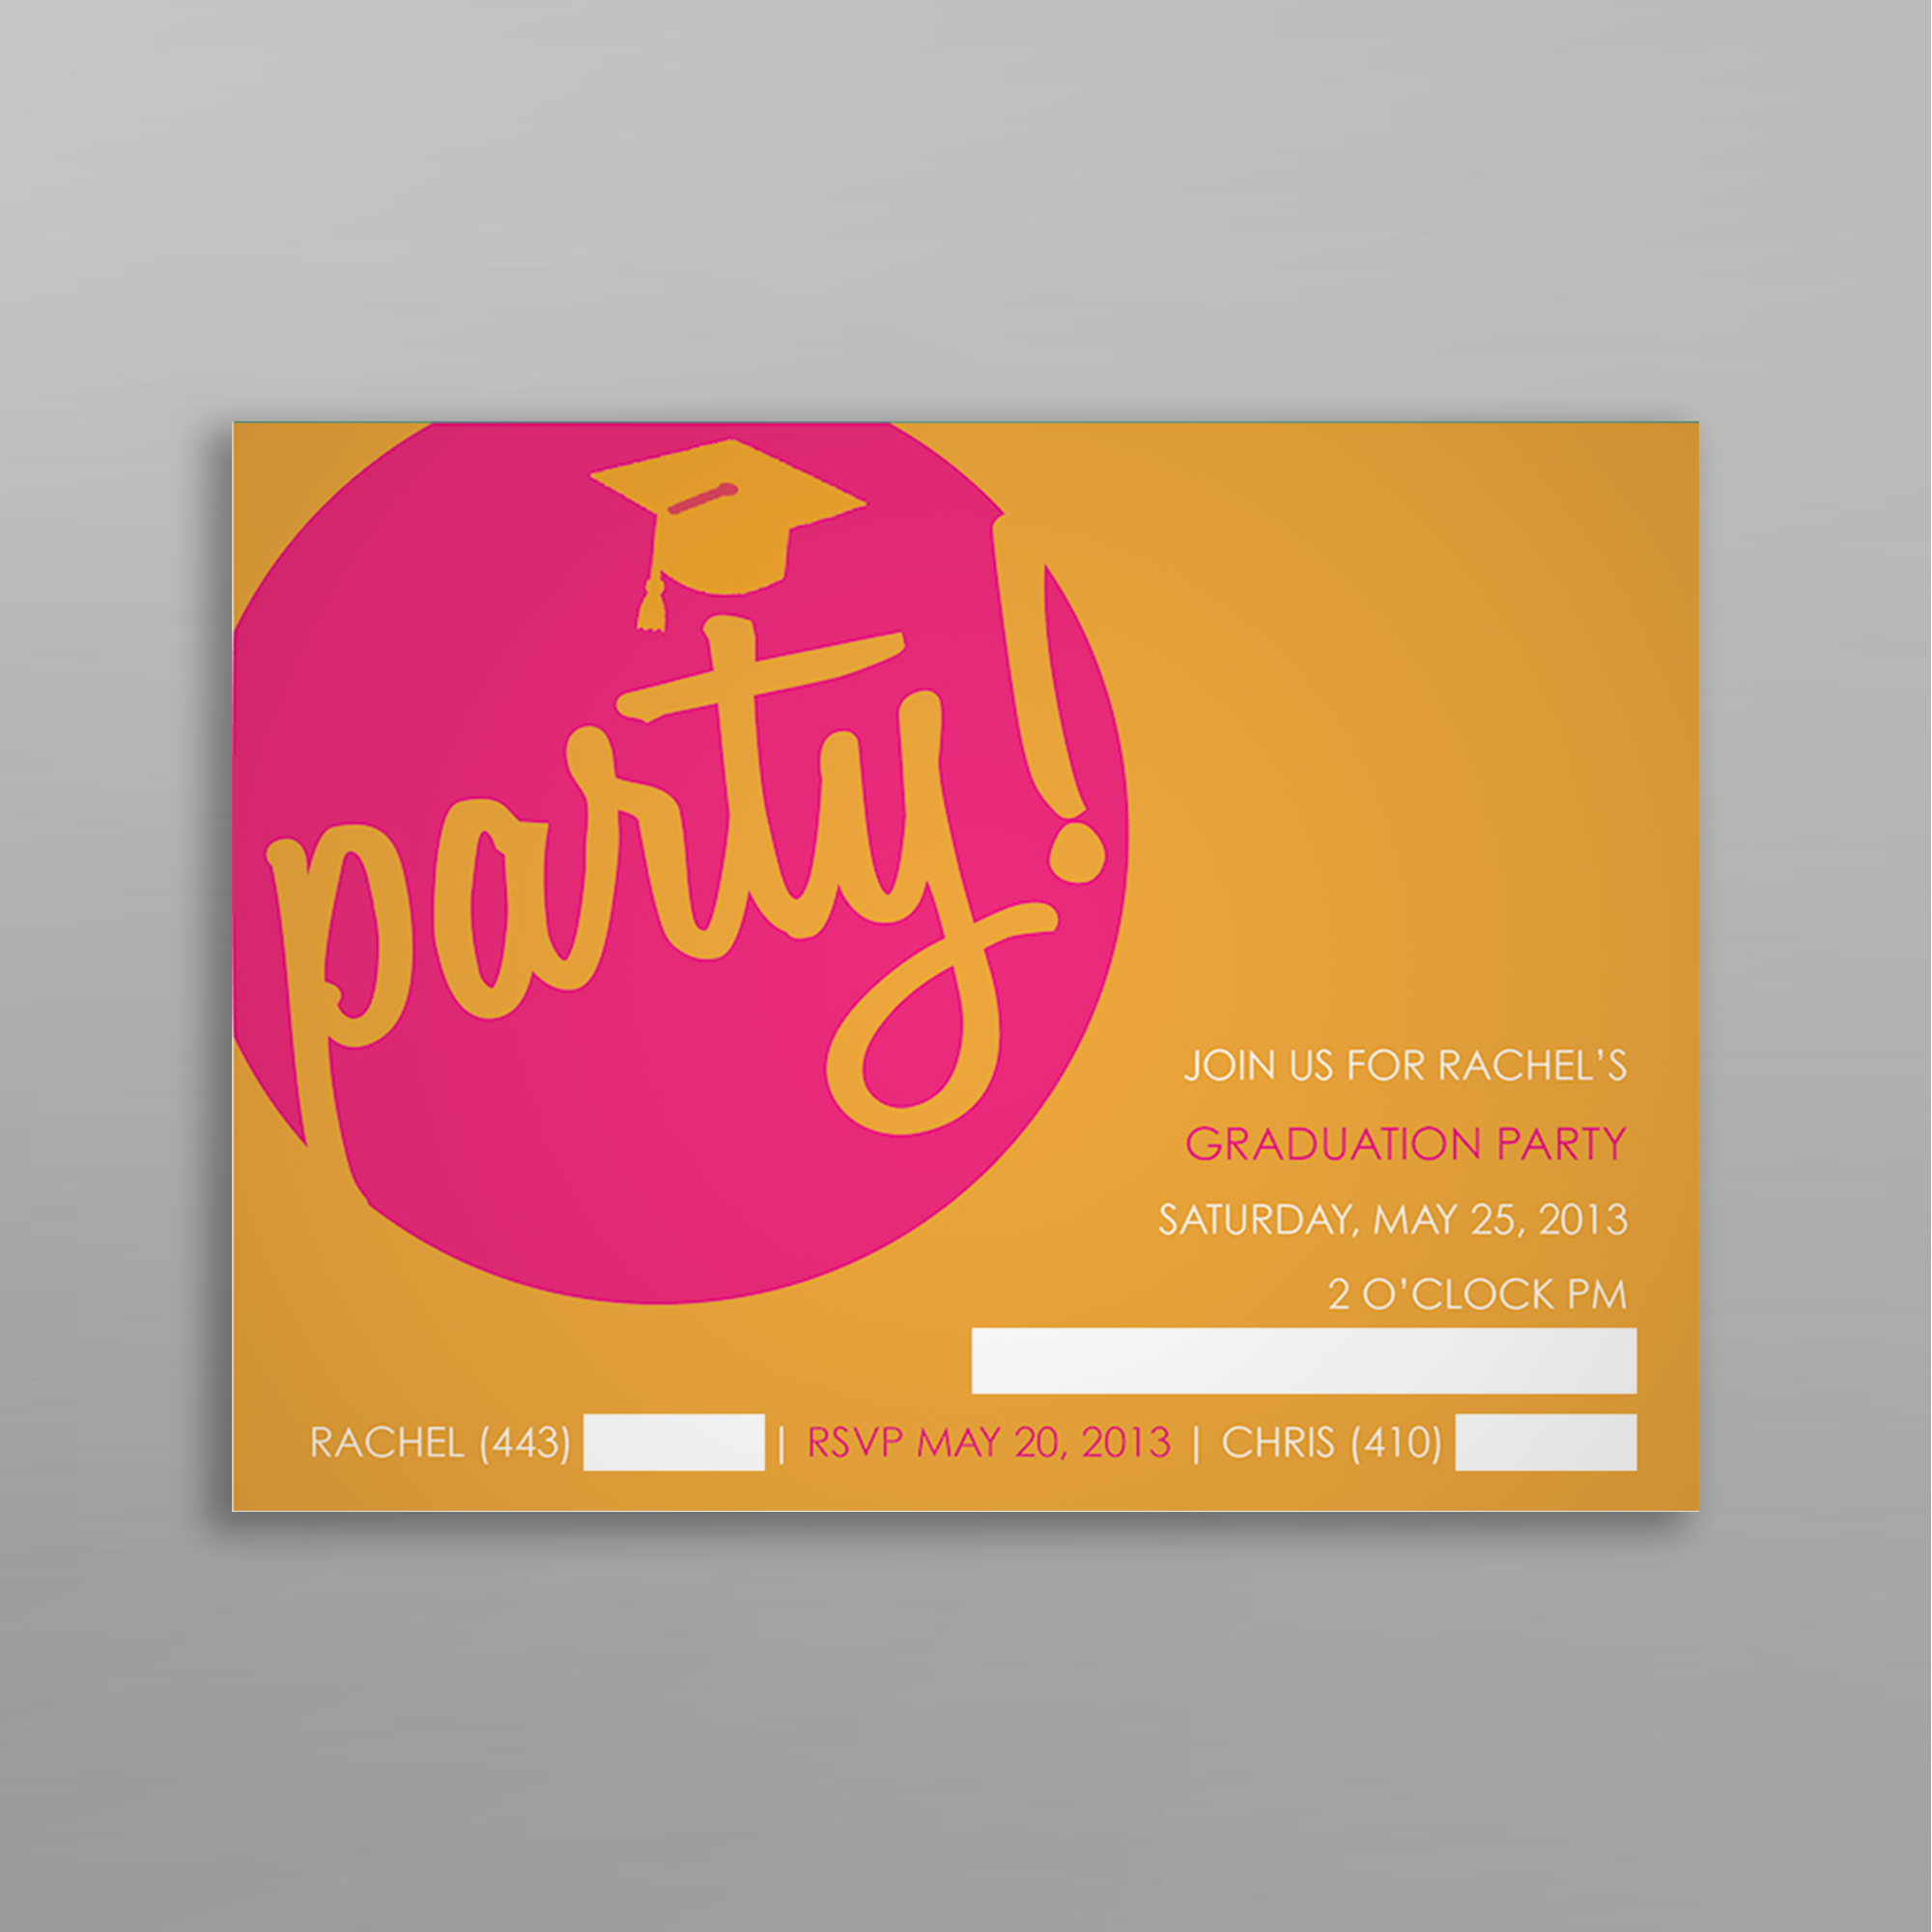 invite-party.png